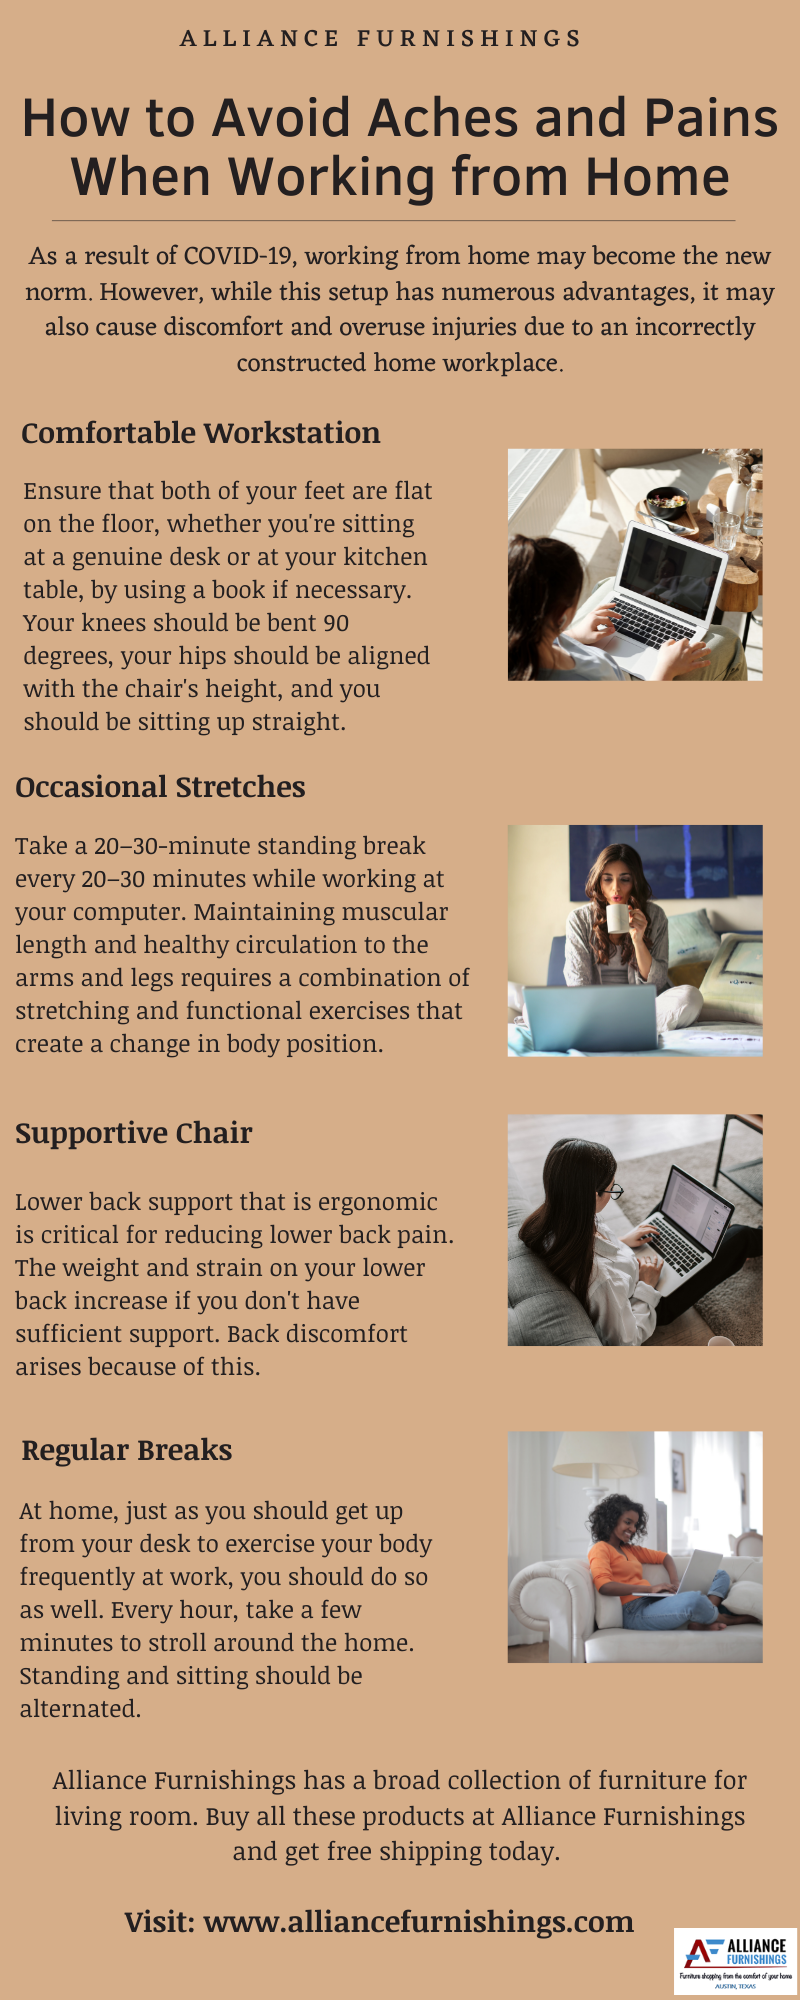 How to Avoid Aches and Pains When Working from Home